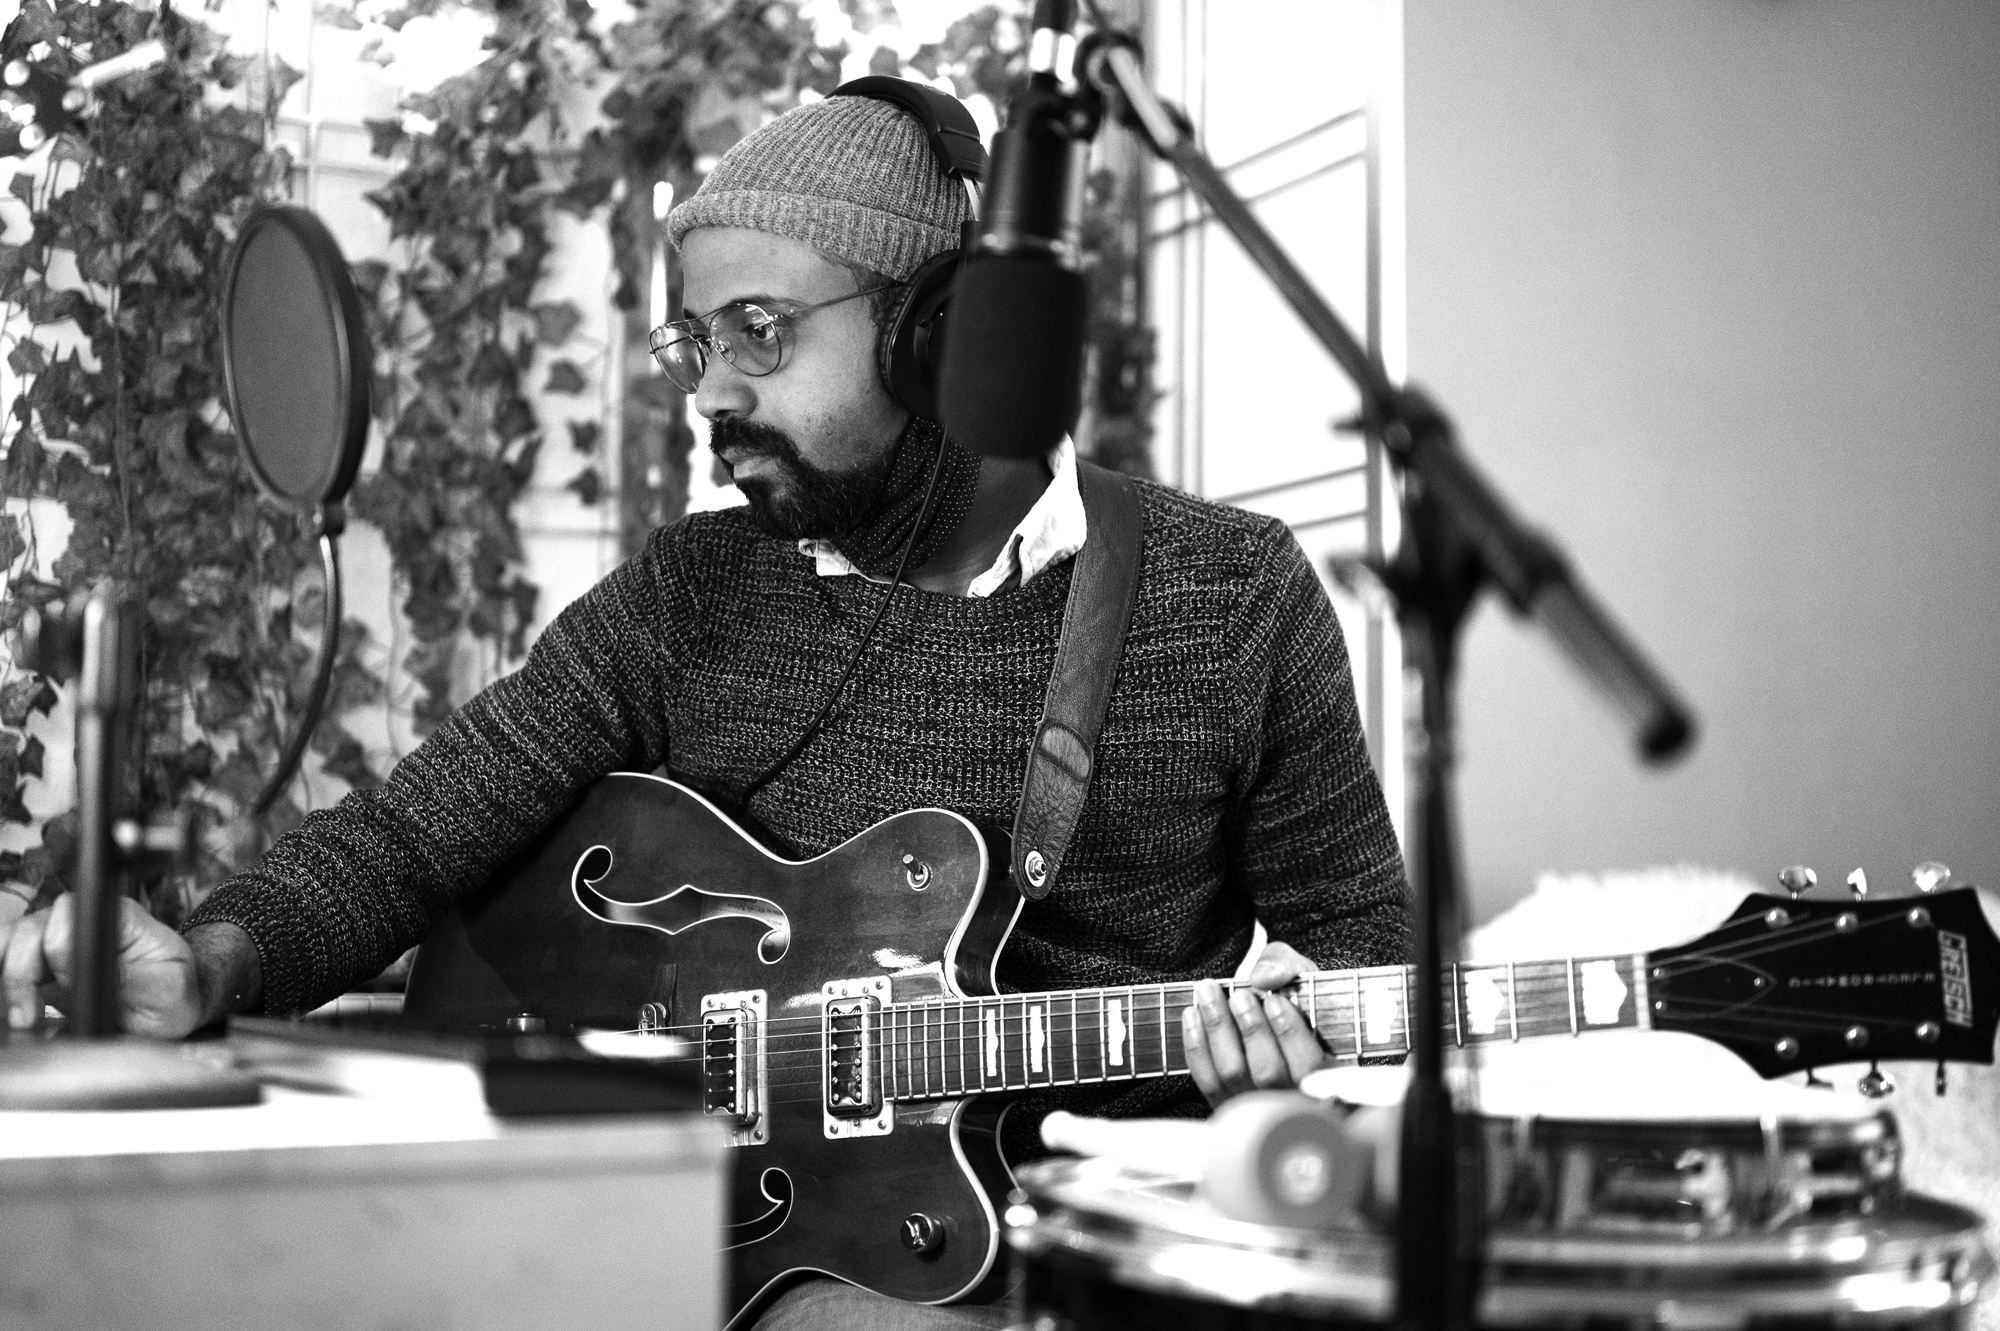 A black and white photo of Micah McKee sitting down at a desk with his guitar on his lap. He is dark-skinned and has a beard. He's wearing a sweater, a beanie, and glasses. He has noise-cancelling headphones on, and there is recording equipment around him. He's looking to the left of the frame, toward a screen out of frame. He's holding the guitar in his lap with his left hand, and his right hand is on the desk that his eyes are focused toward. There's a drum on the right that's out of focus, and there are plants in the background. Photo by Katie Sikora.